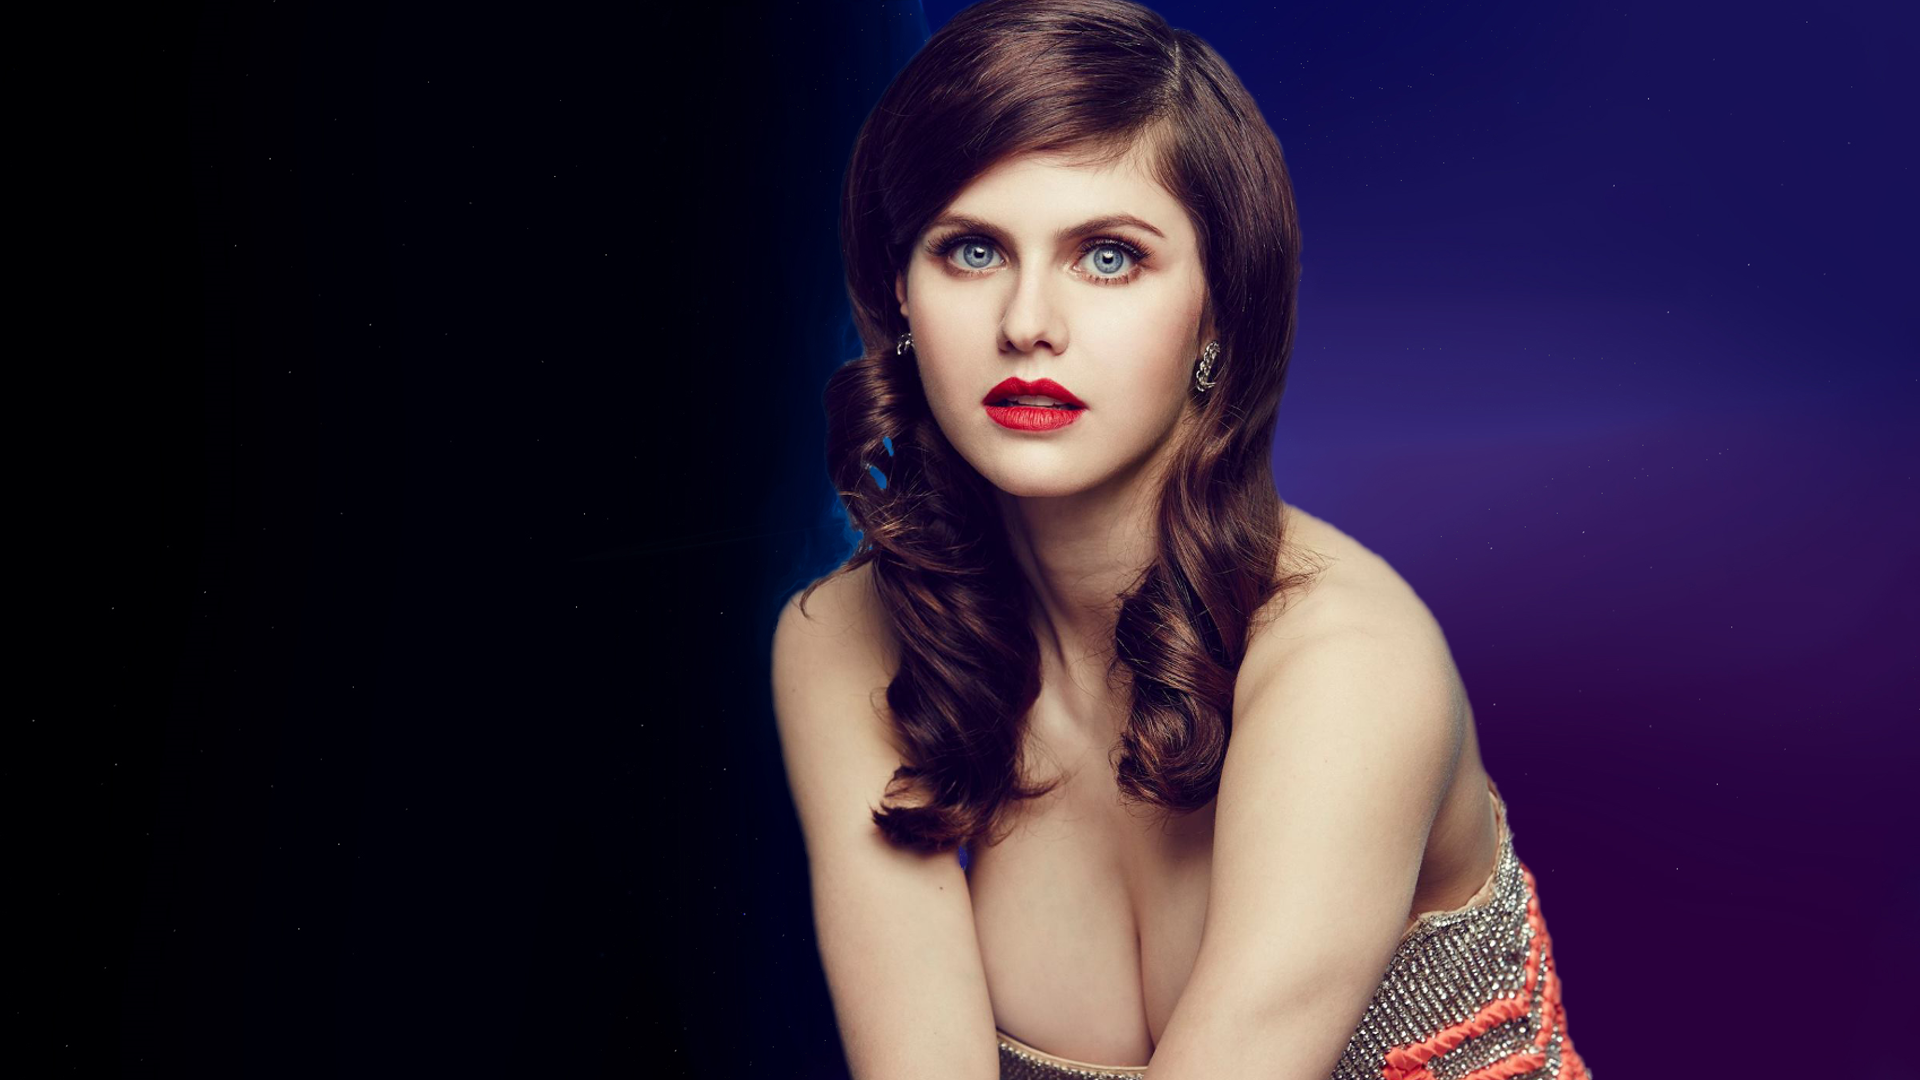 alexandra daddario wallpapers, pictures, images